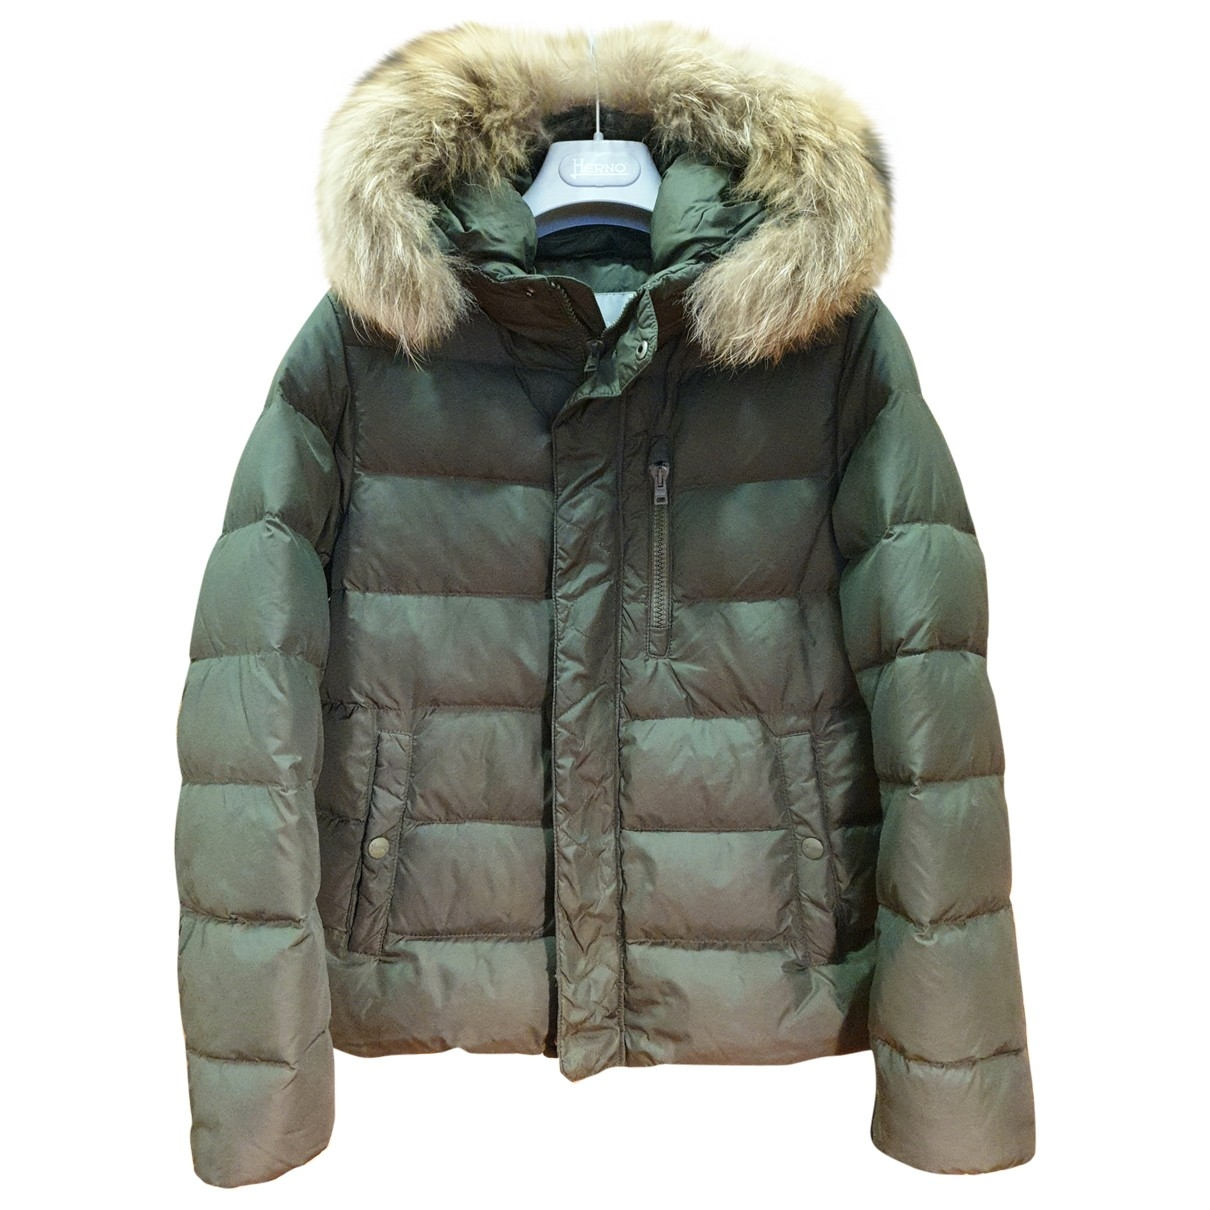 Herno \N Green jacket & coat for Kids 12 years - XS FR